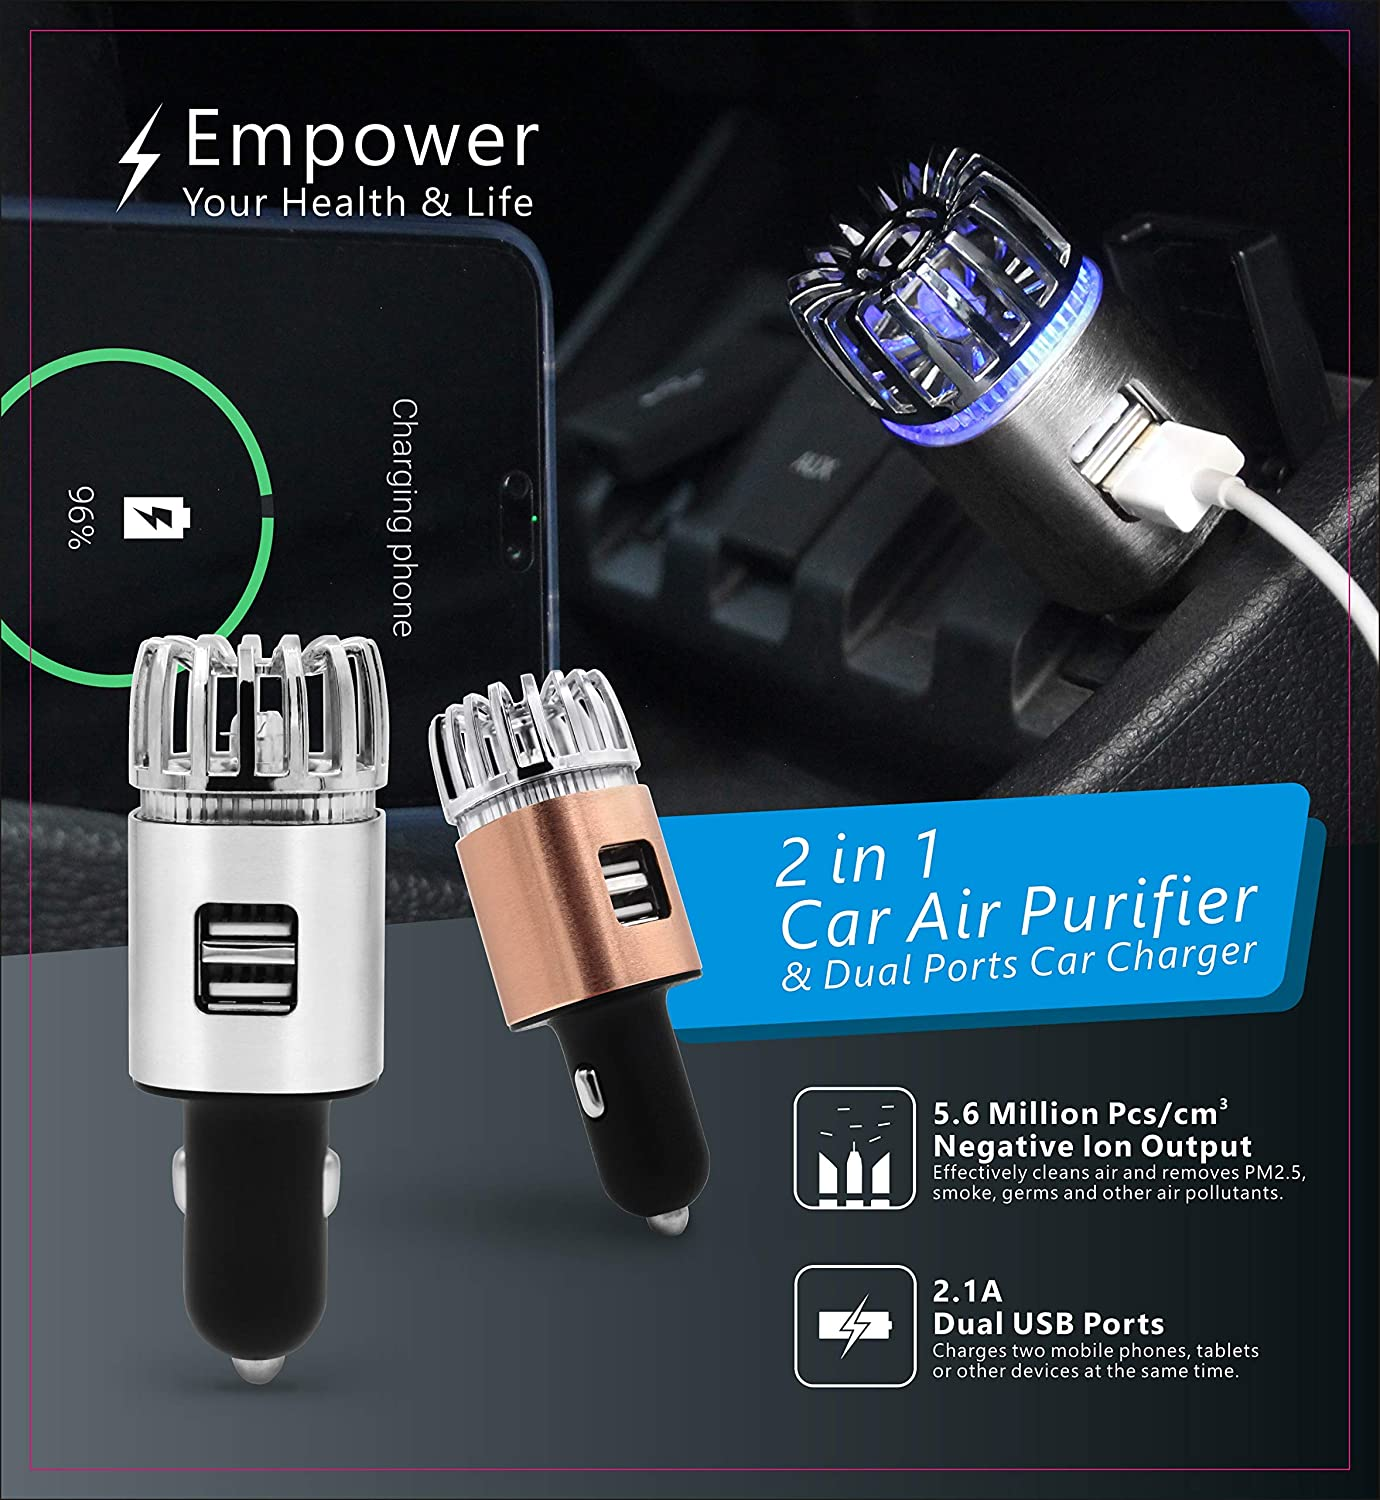 Car Air Purifier with Dual USB